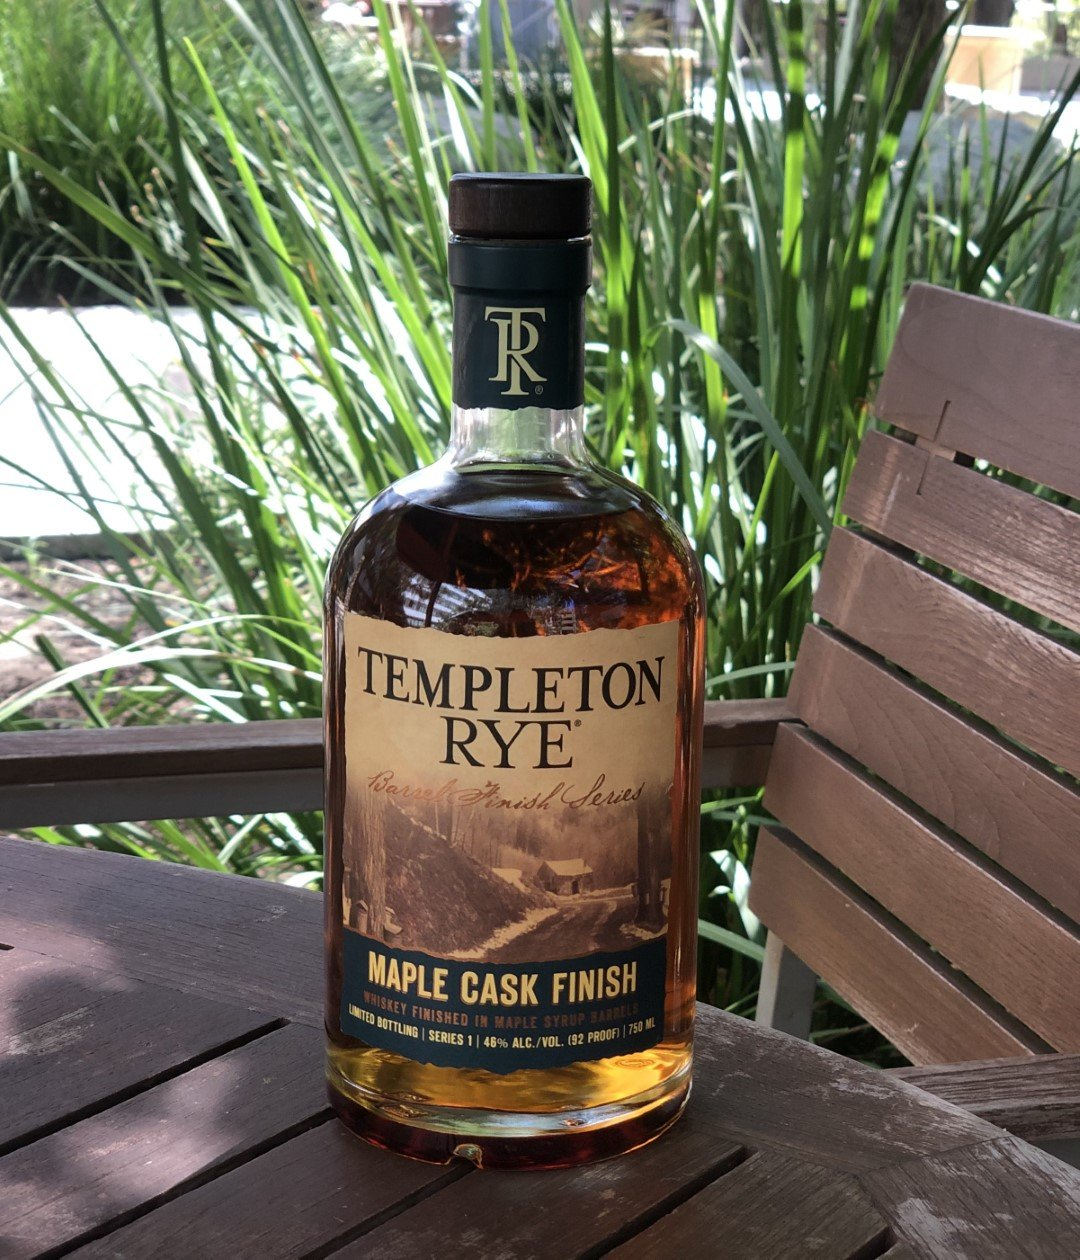 Templeton Rye Maple Cask Finish